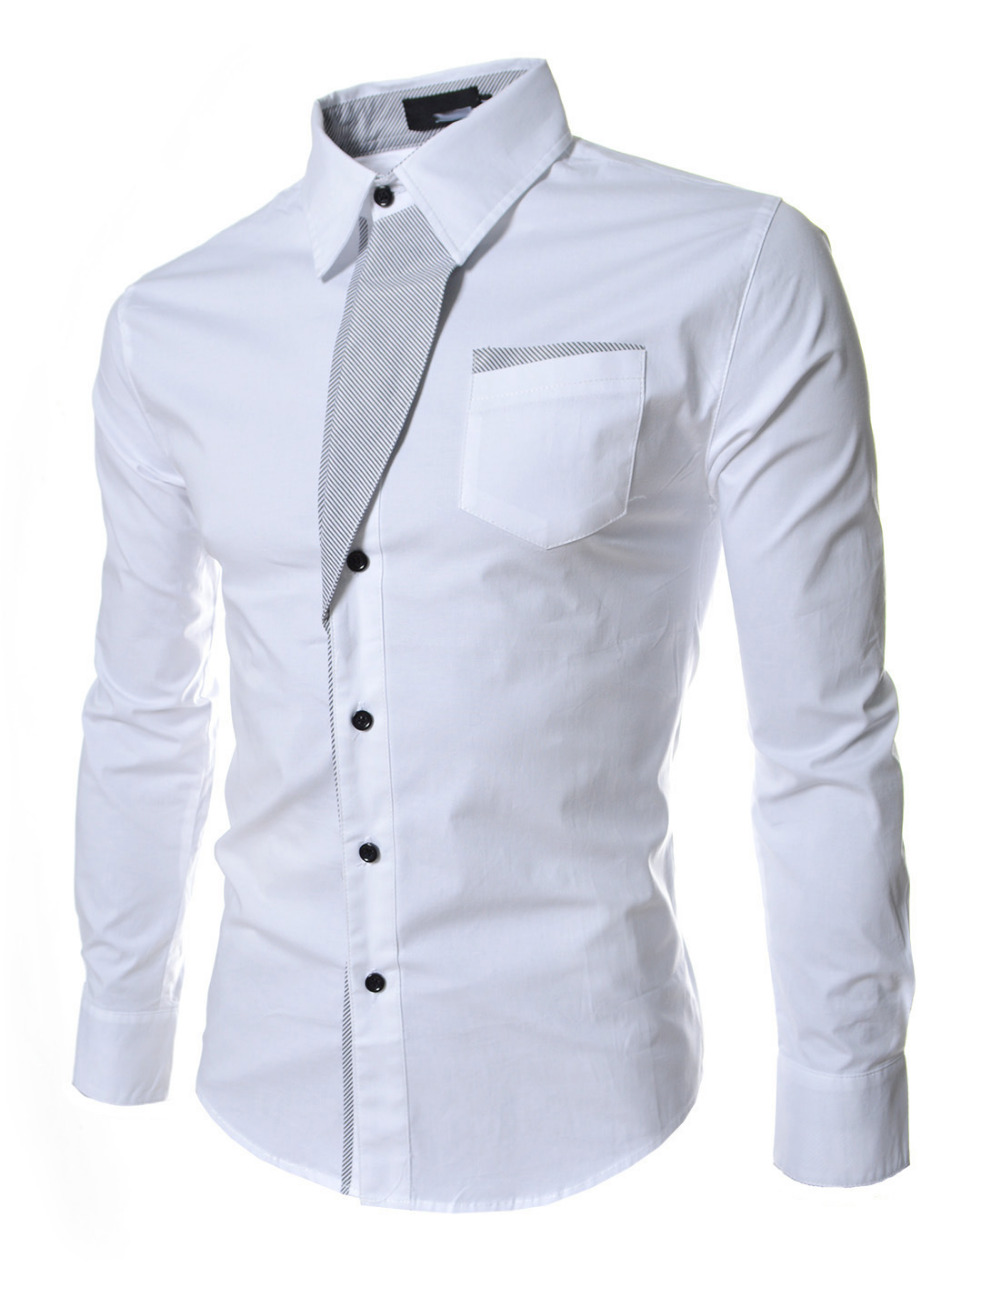 Top sale mens stylish casual shirt spring men long sleeve for Wedding dress shirts for men